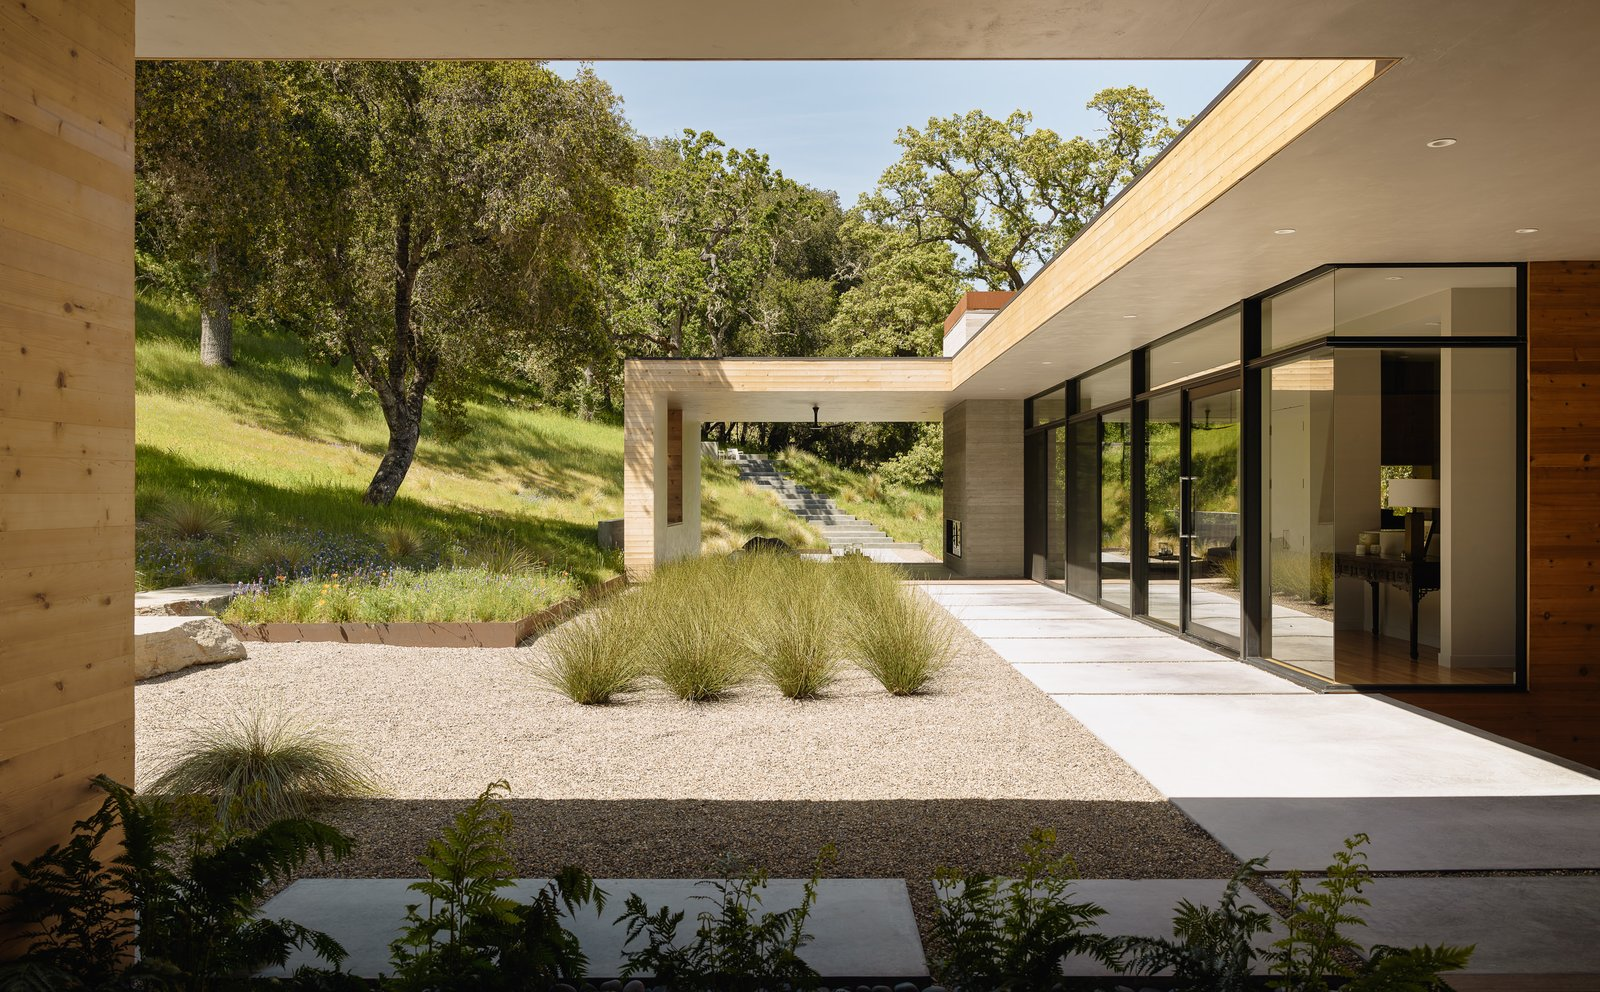 the-split-program-separates-the-main-living-spaces-from-the-master-and-guest-suites-allowing-the-outdoors-to-flow-more-easily-into-t.jpg